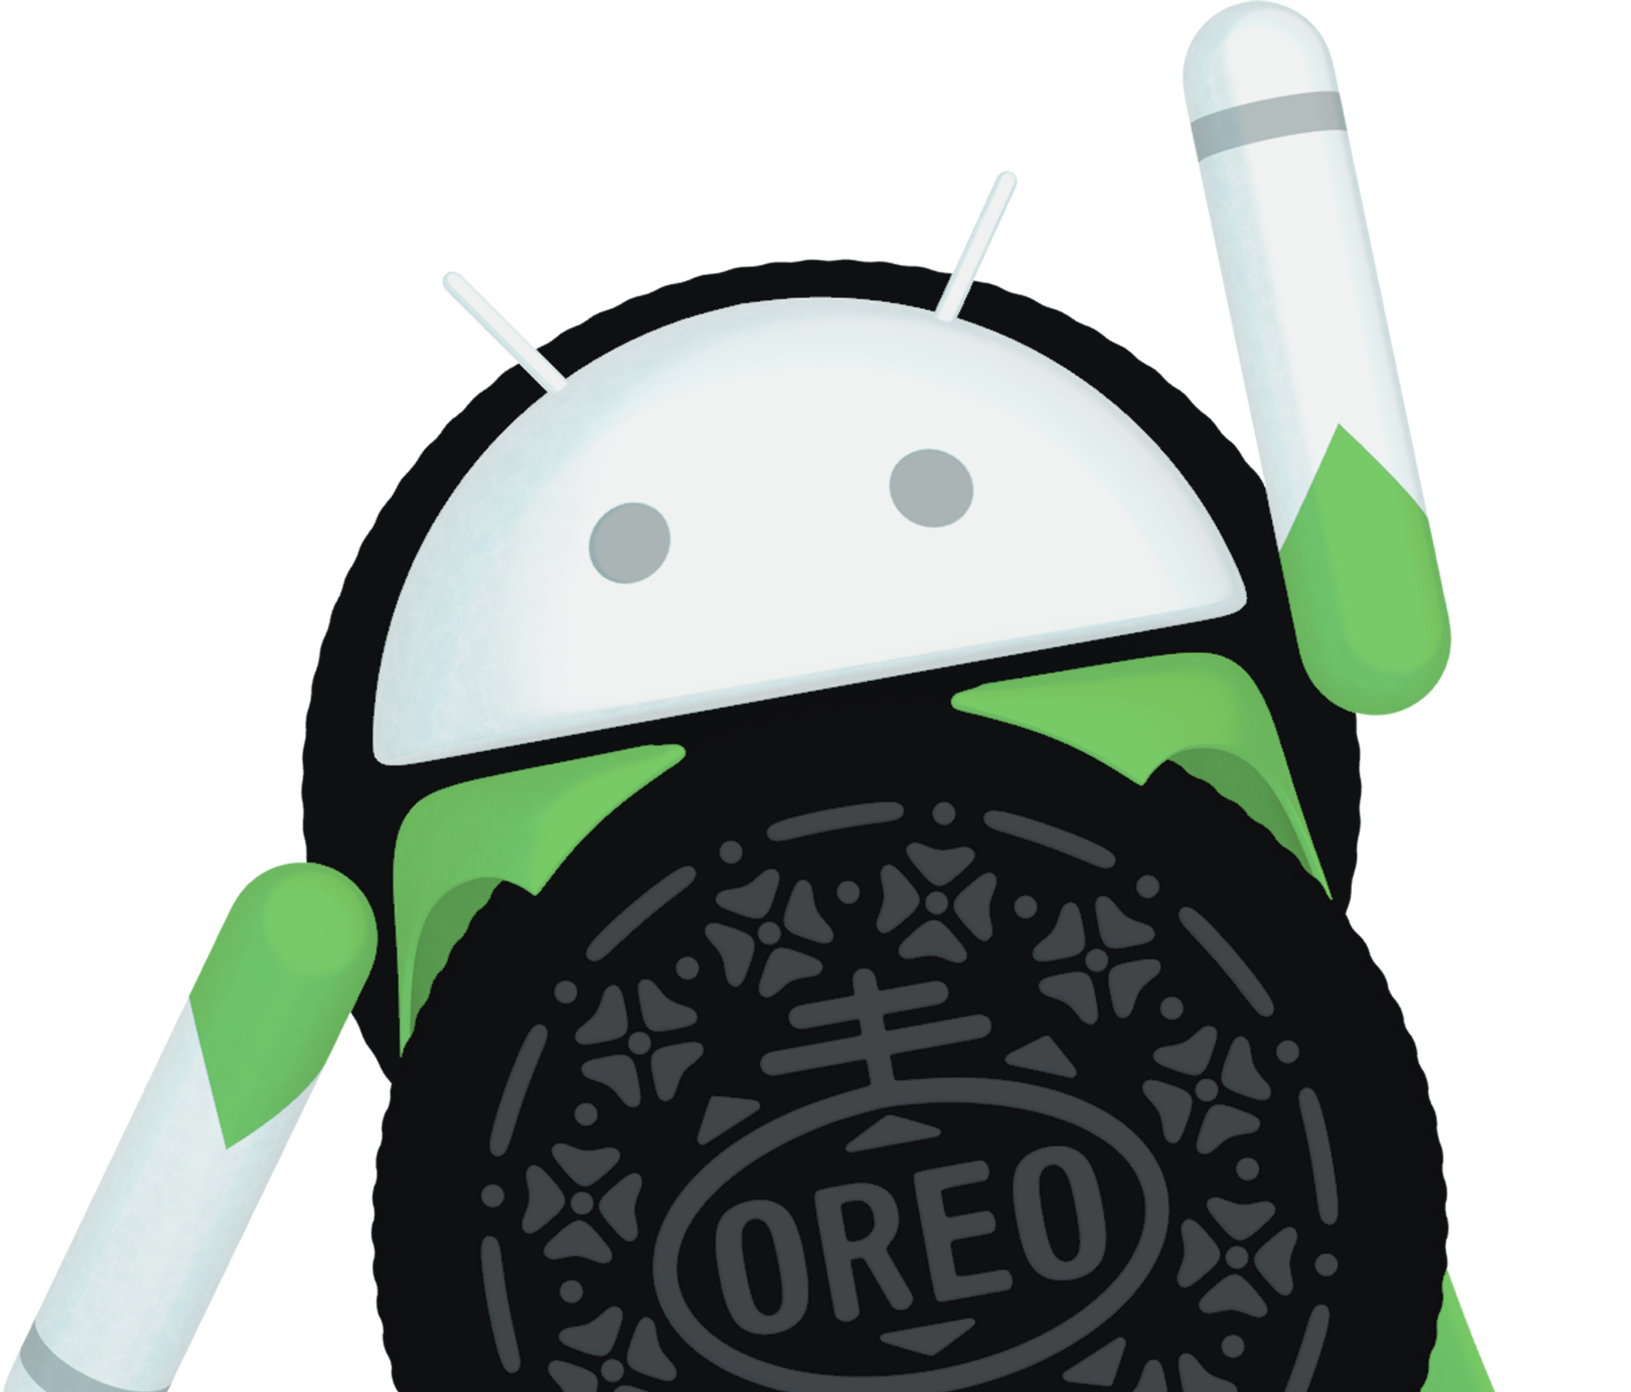 Android google has just. Oreo clipart side view